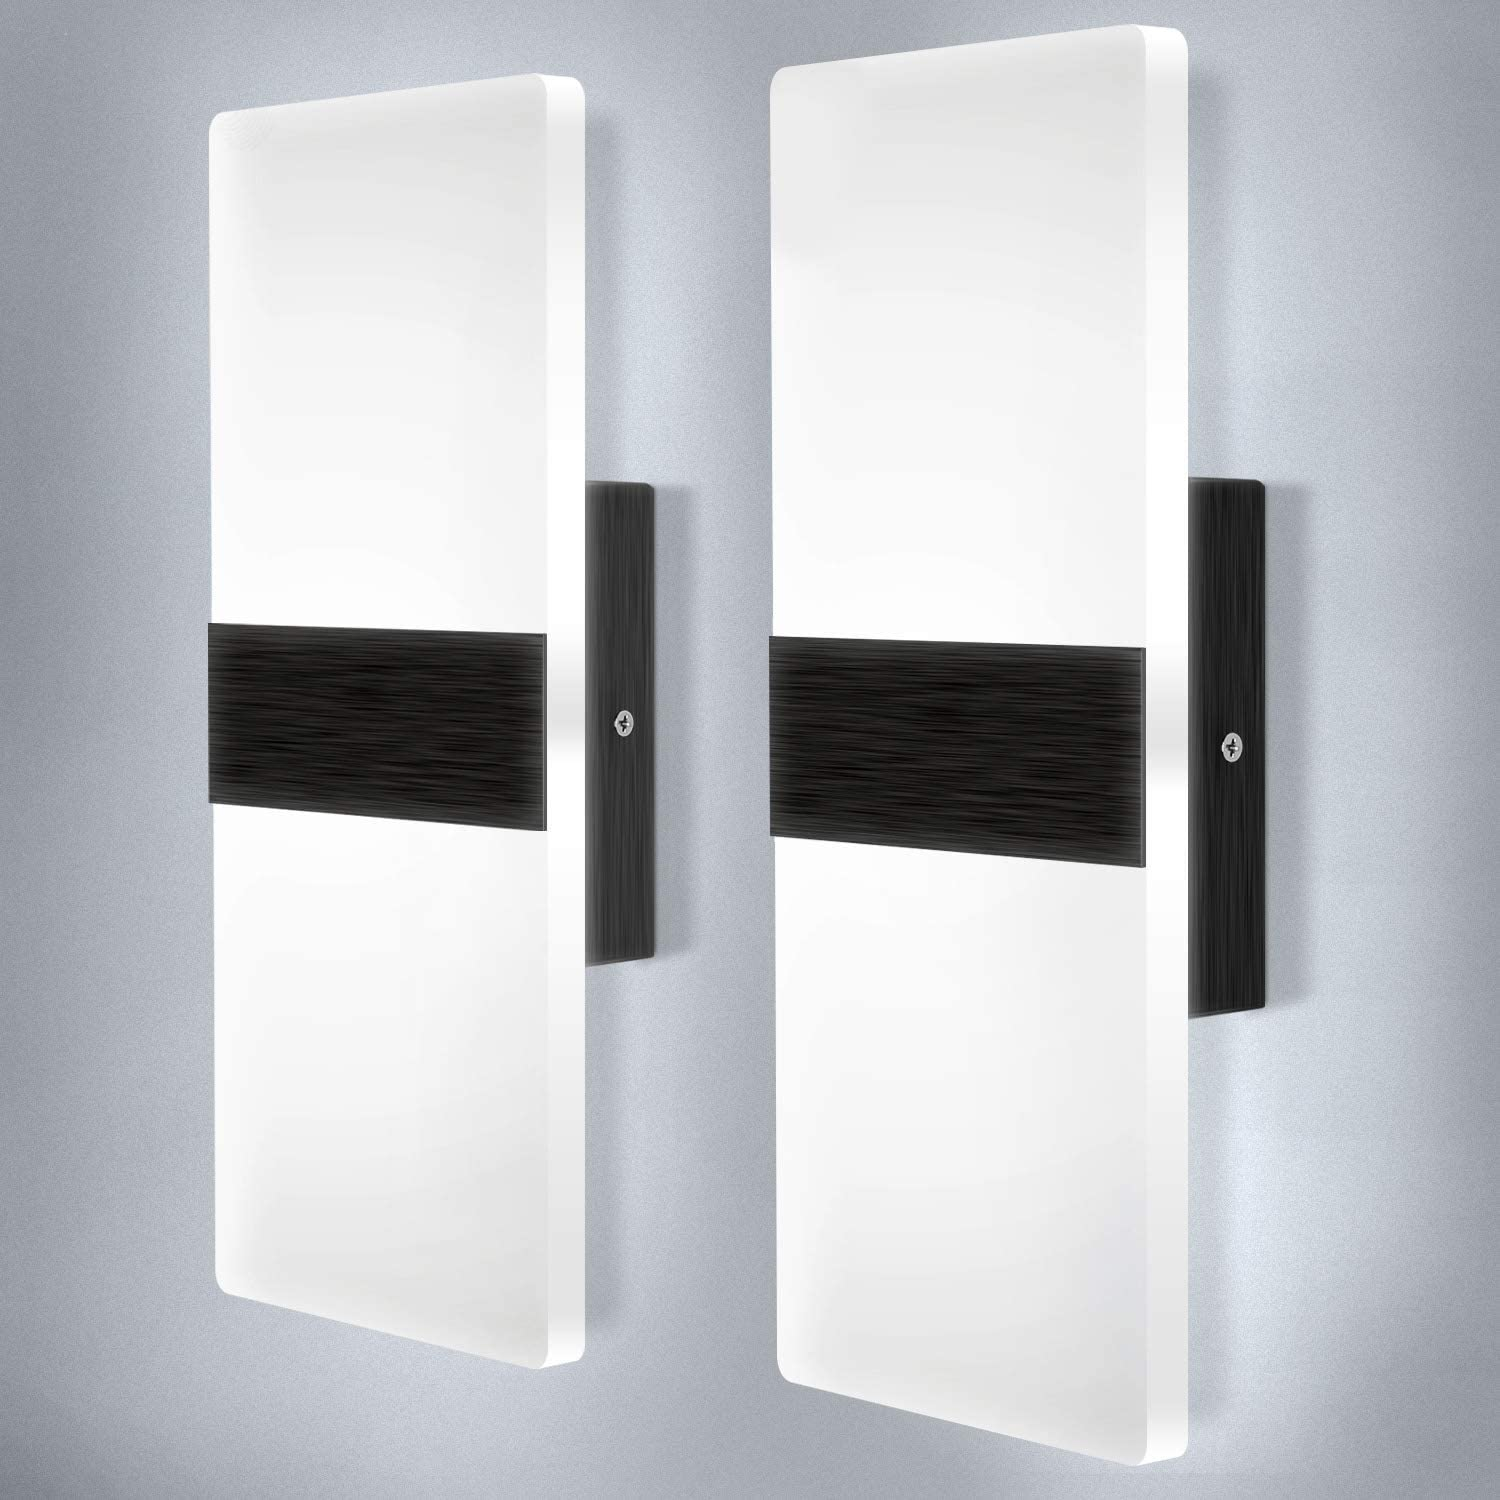 Lightess Modern Wall Sconce Set of 2 LED Hardwired Wall Lamp Black Brushed Wall Mount Sconce Lighting Acrylic Square Up Down Wall Sconces for Bedroom Hallway Living Room 12W Cool White